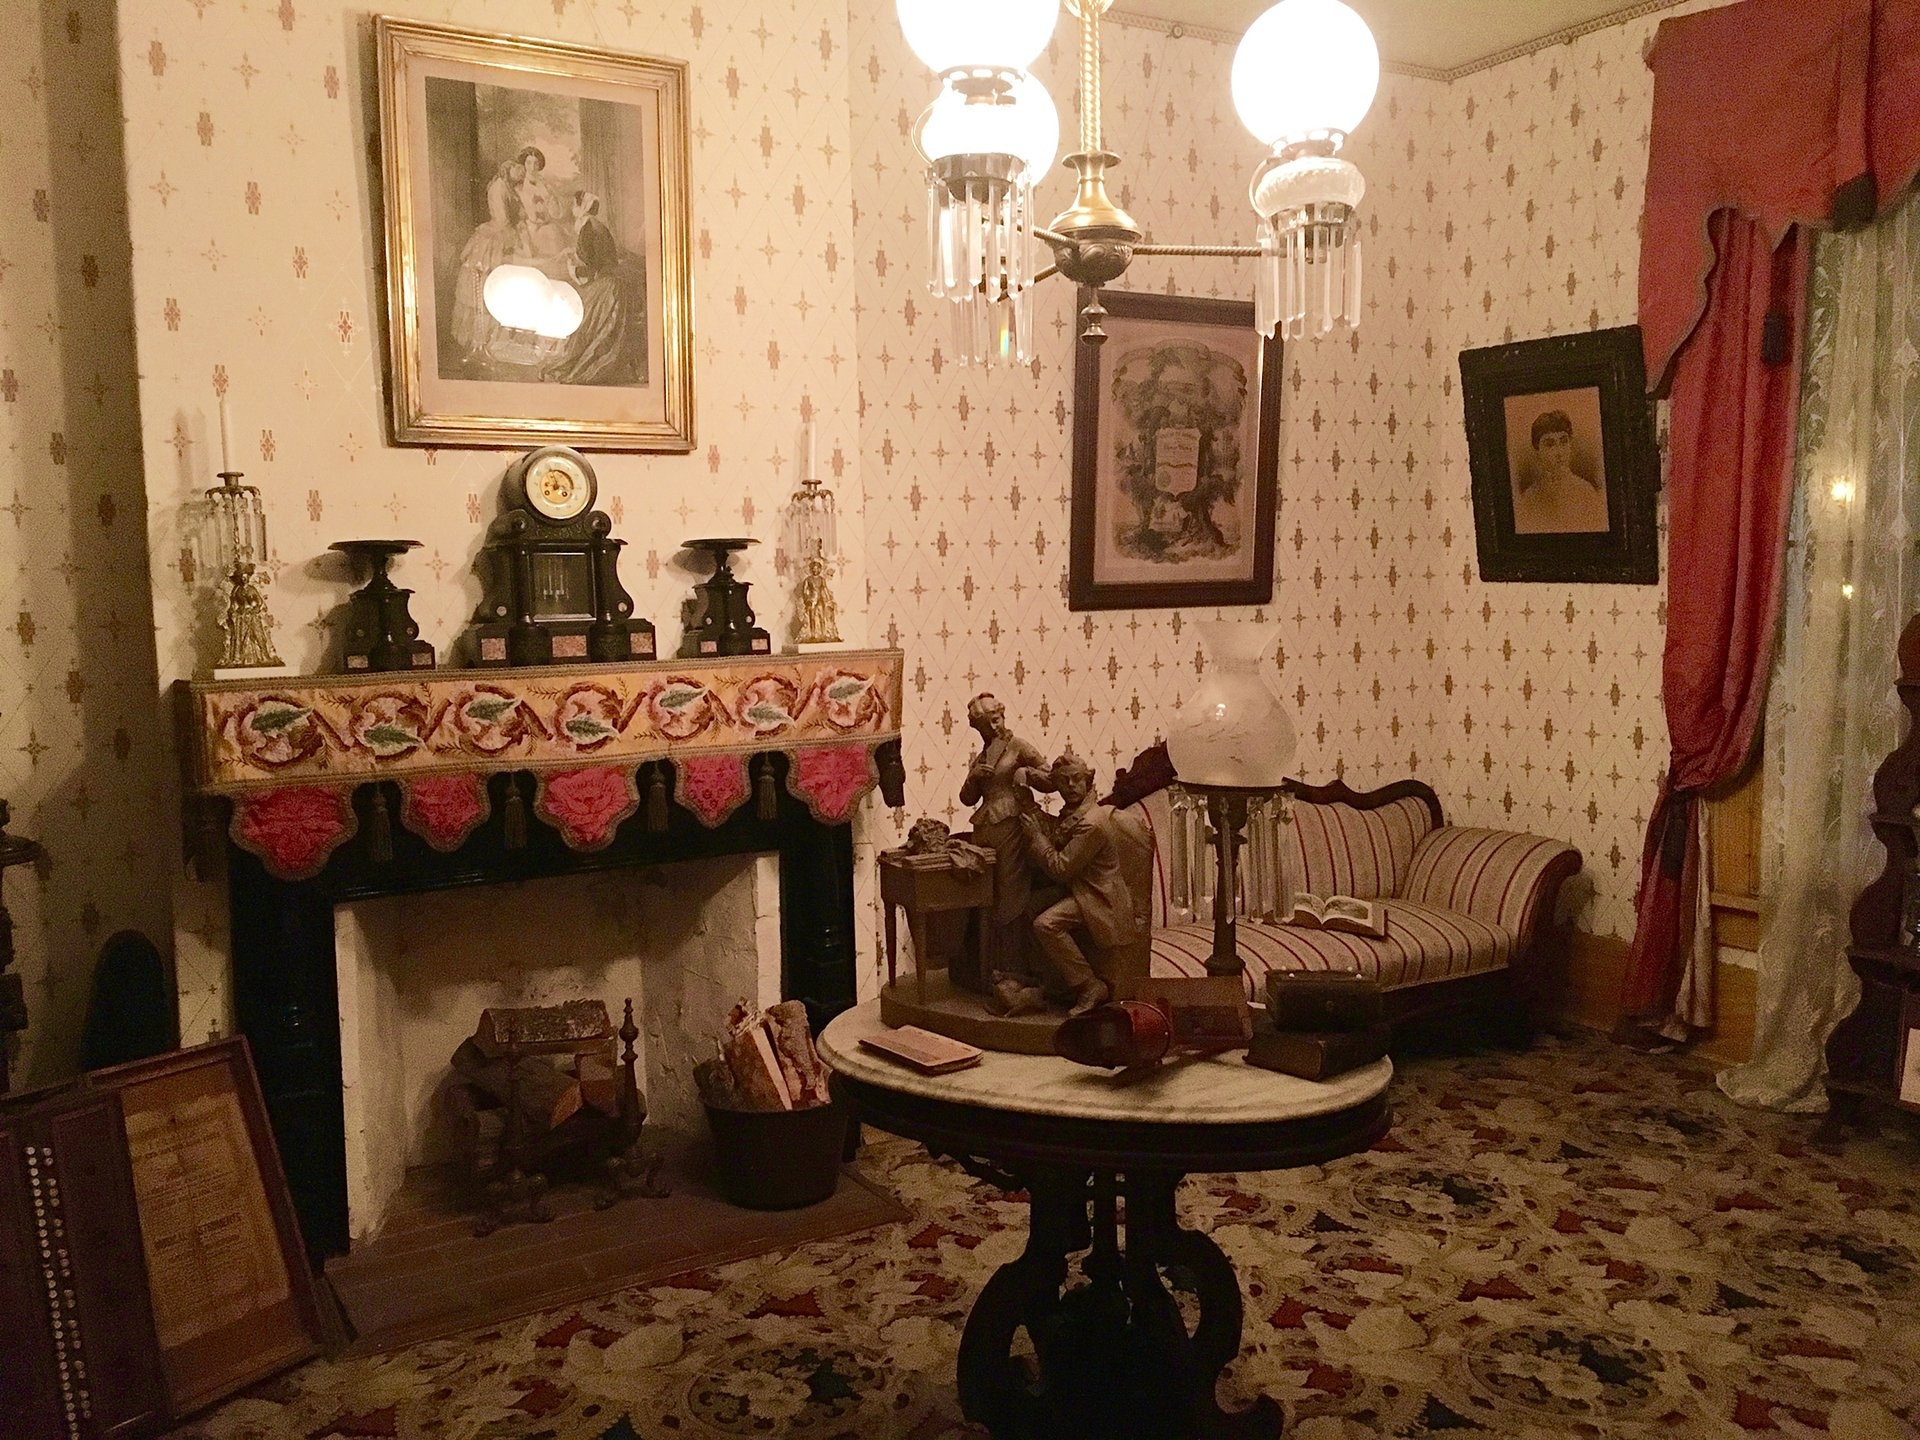 The Whaley House haunted tour is definitely spooky, like this hideous living room decor for example